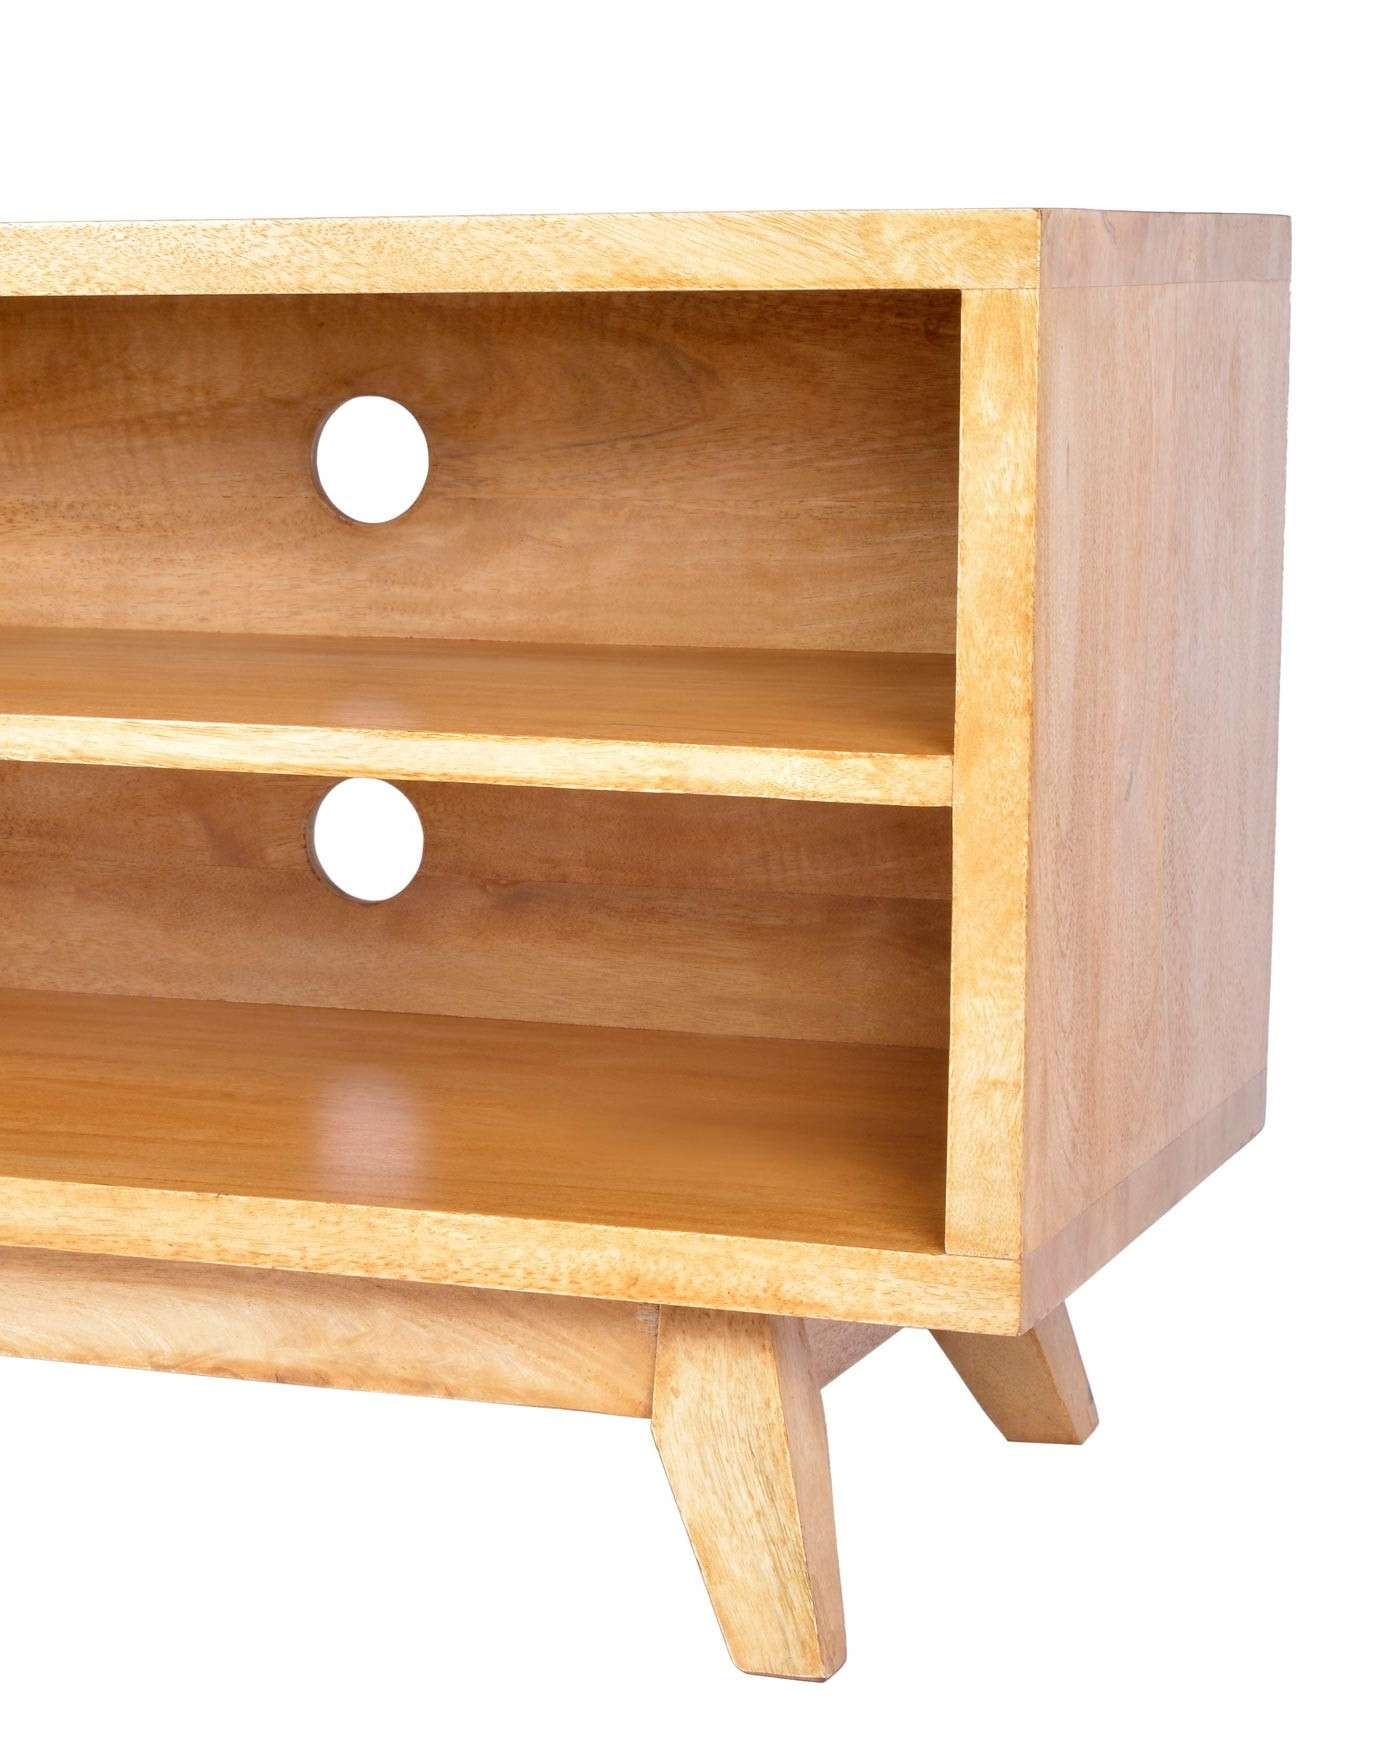 Retro Wooden Tv Stand With Shelf 100% Solid Mango Wood Oak Shade Inside Mango Wood Tv Stands (View 3 of 15)